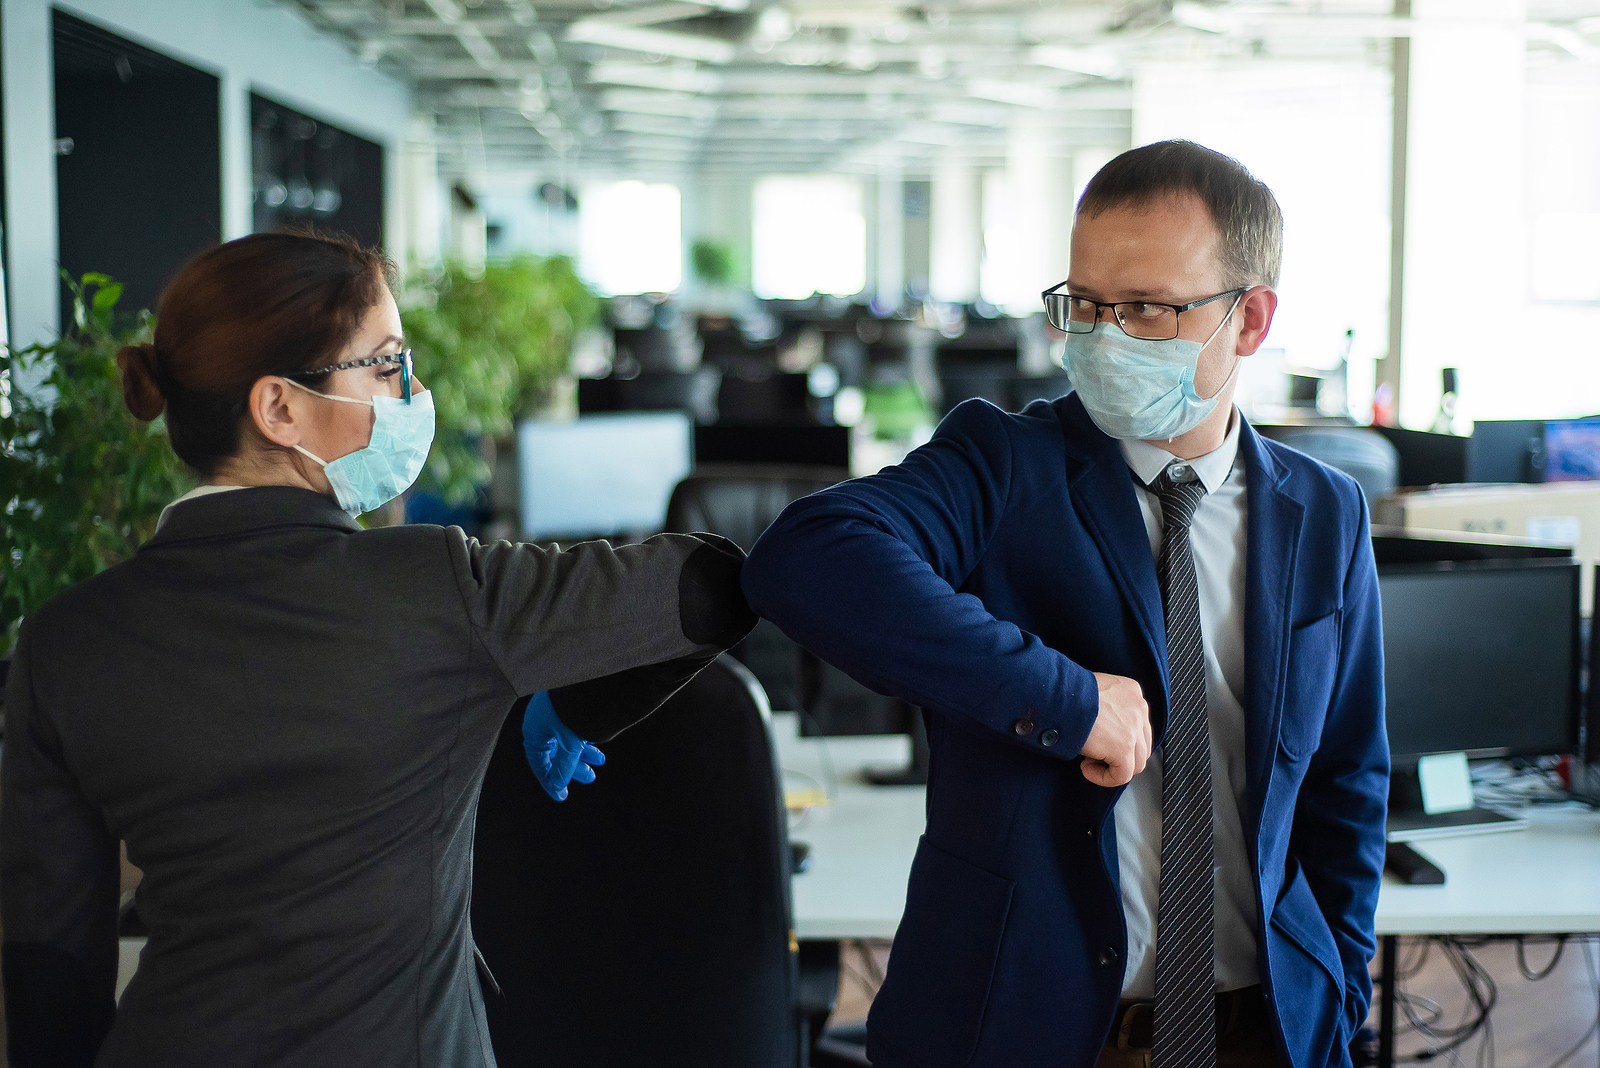 6 Ways to Keep Your Small Business Thriving During the Pandemic